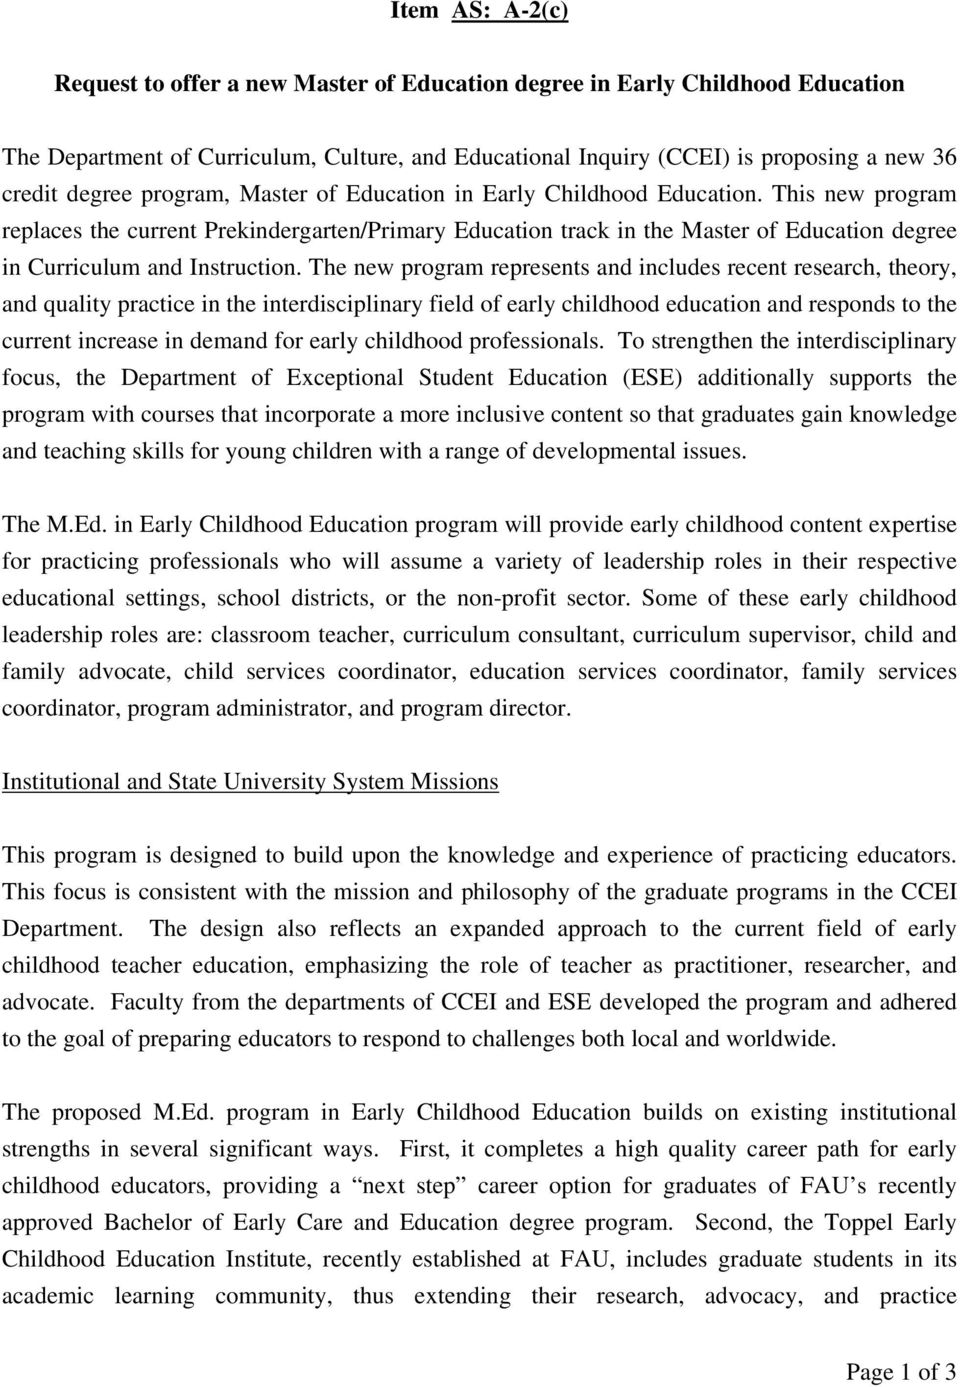 This new program replaces the current Prekindergarten/Primary Education track in the Master of Education degree in Curriculum and Instruction.